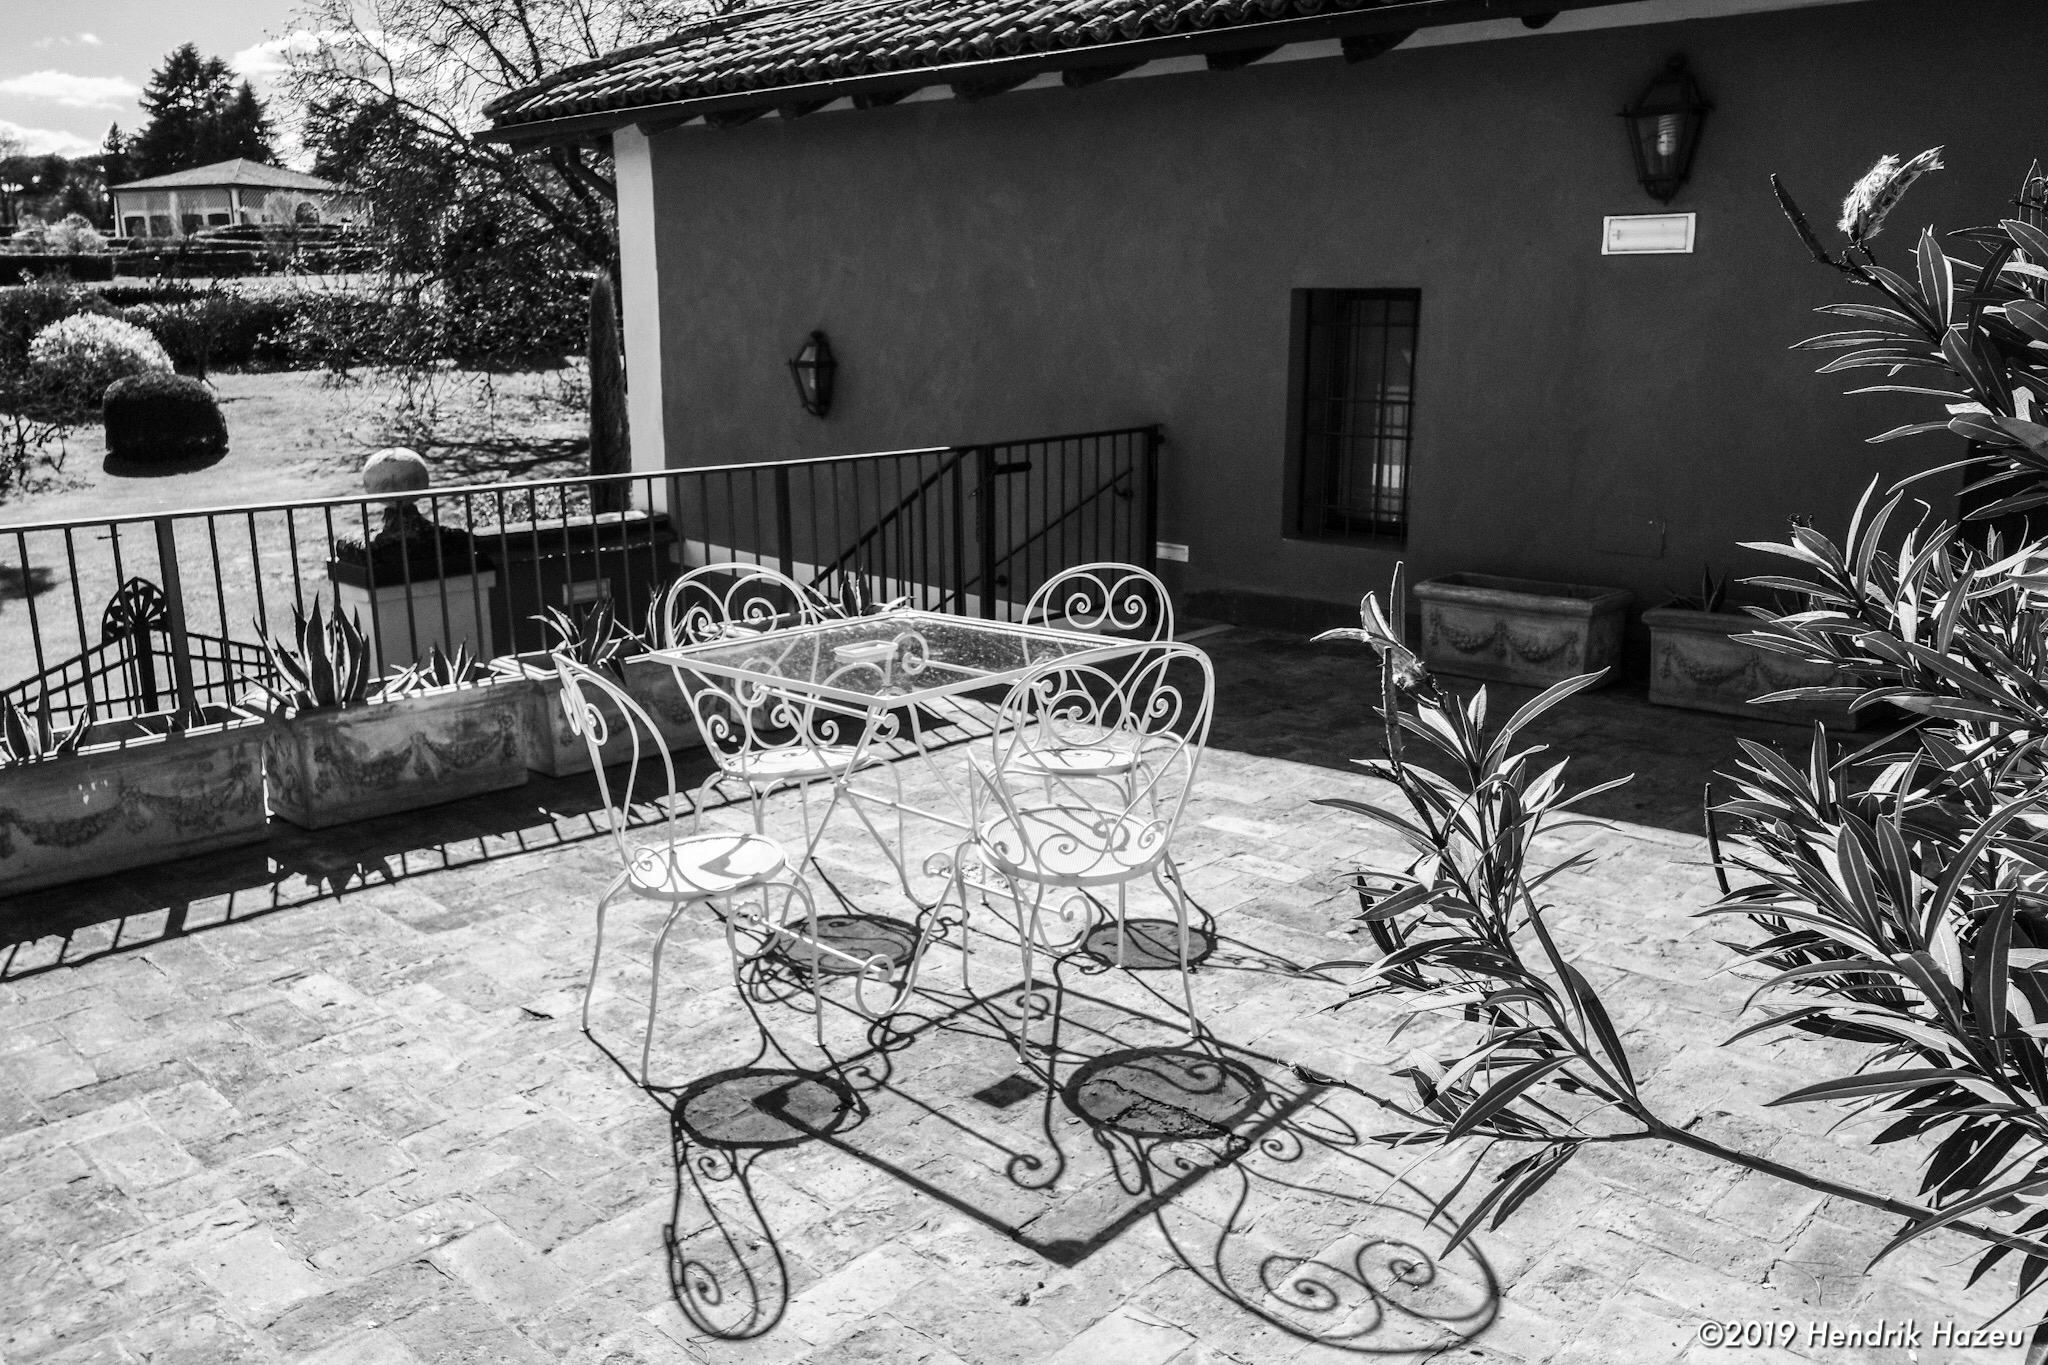 This was our terrace in Cà Palazzo Malvasia from which the first image was taken: Fuji X-H1 & XF 18 mm @f/8